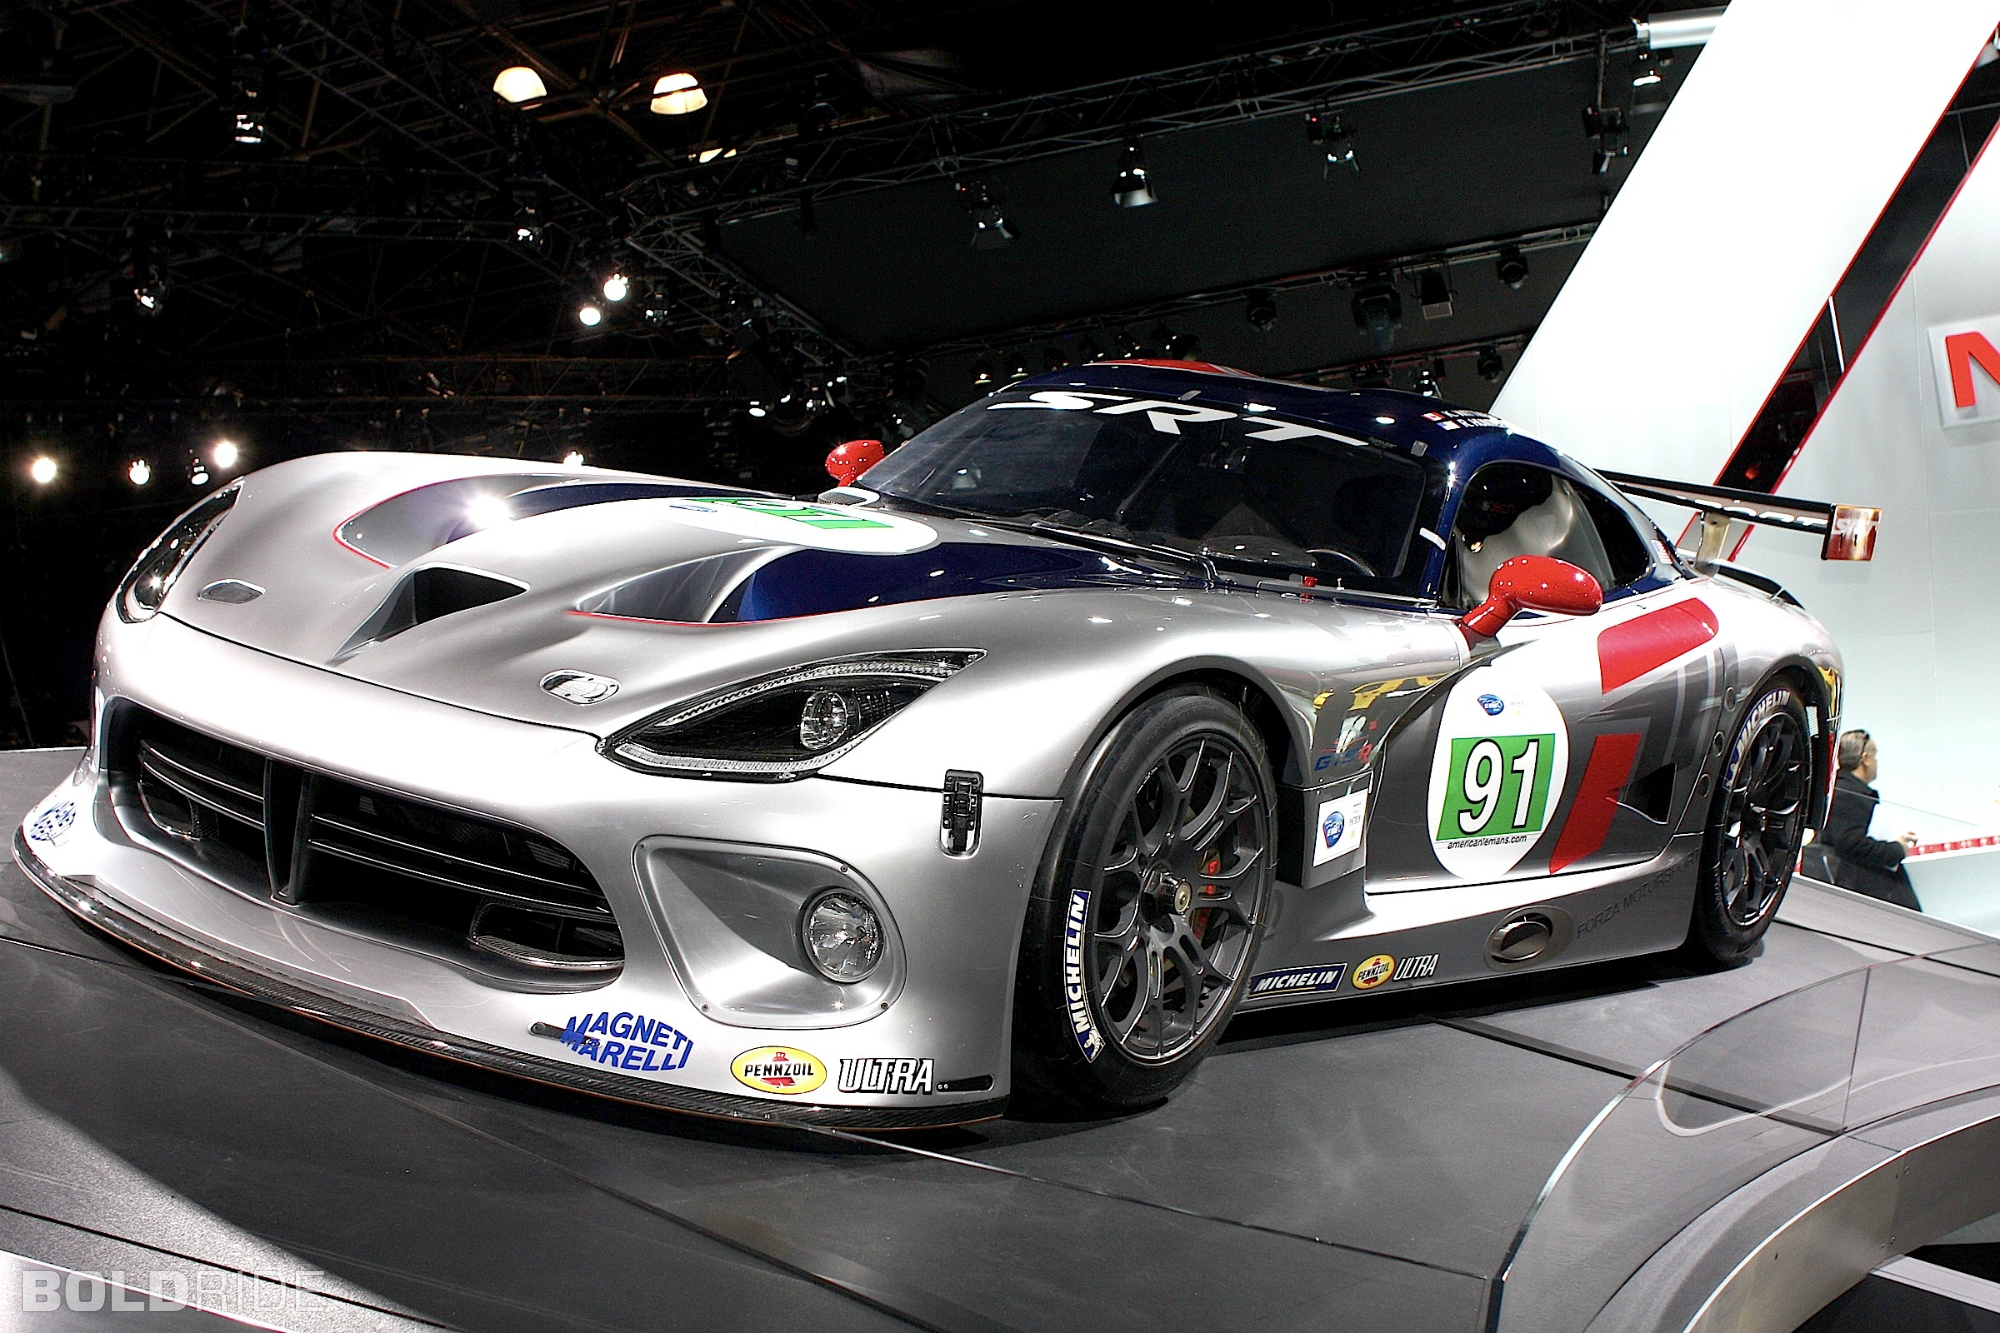 Scene From The Last Viper From Pennzoil L in addition Lotus Elise Car as well Plymouth together with Maxresdefault furthermore Srt Viper Gts. on 2017 dodge viper